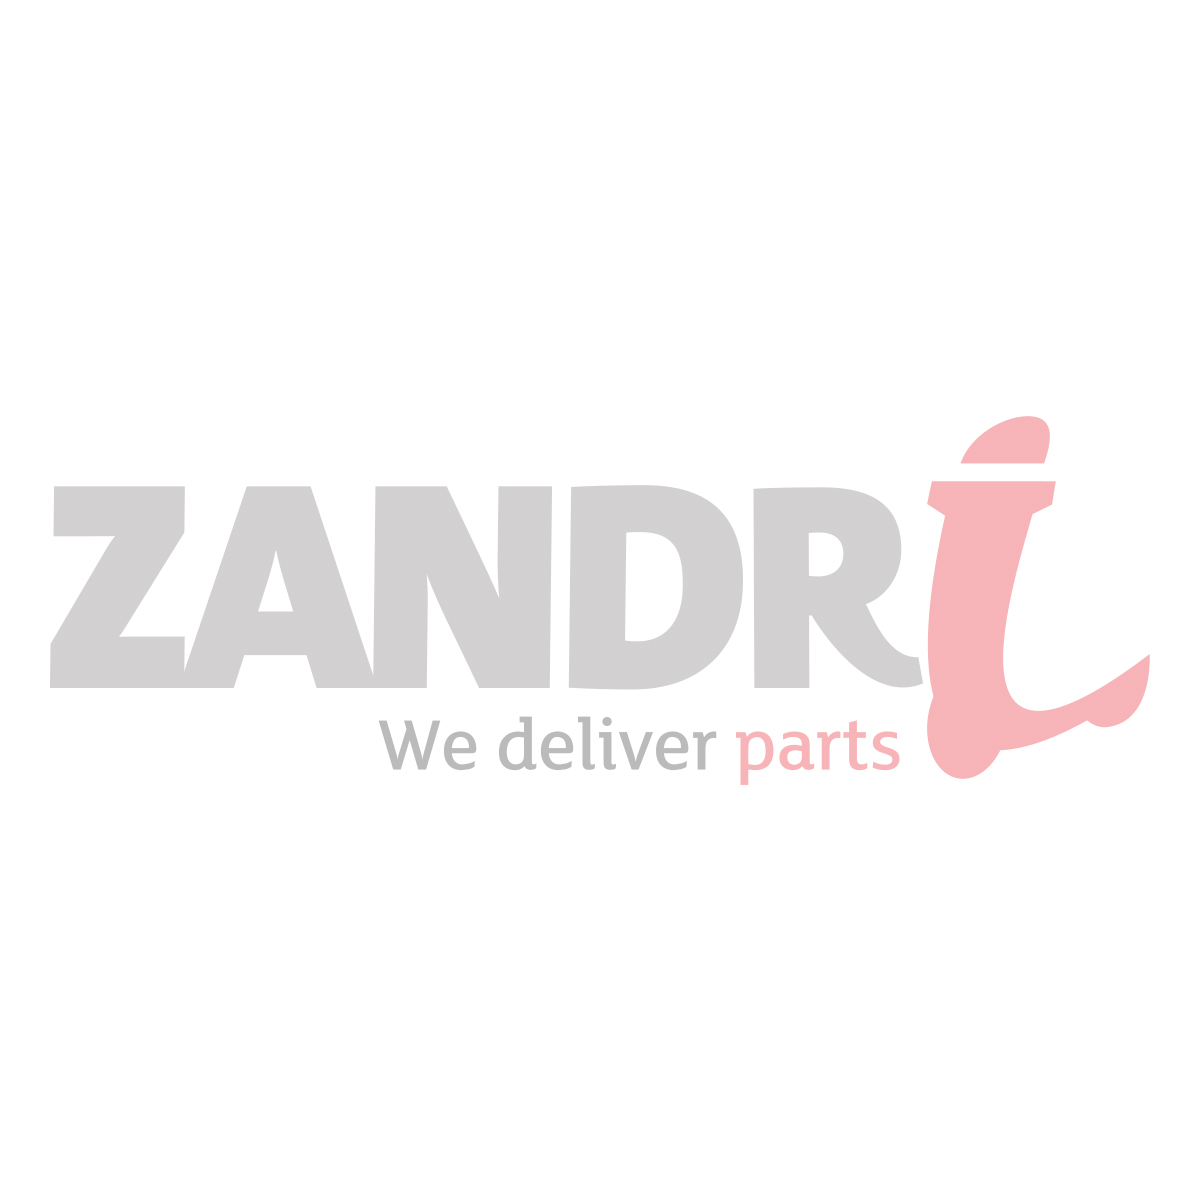 Carburateur Kymco Delivery 4-takt wit